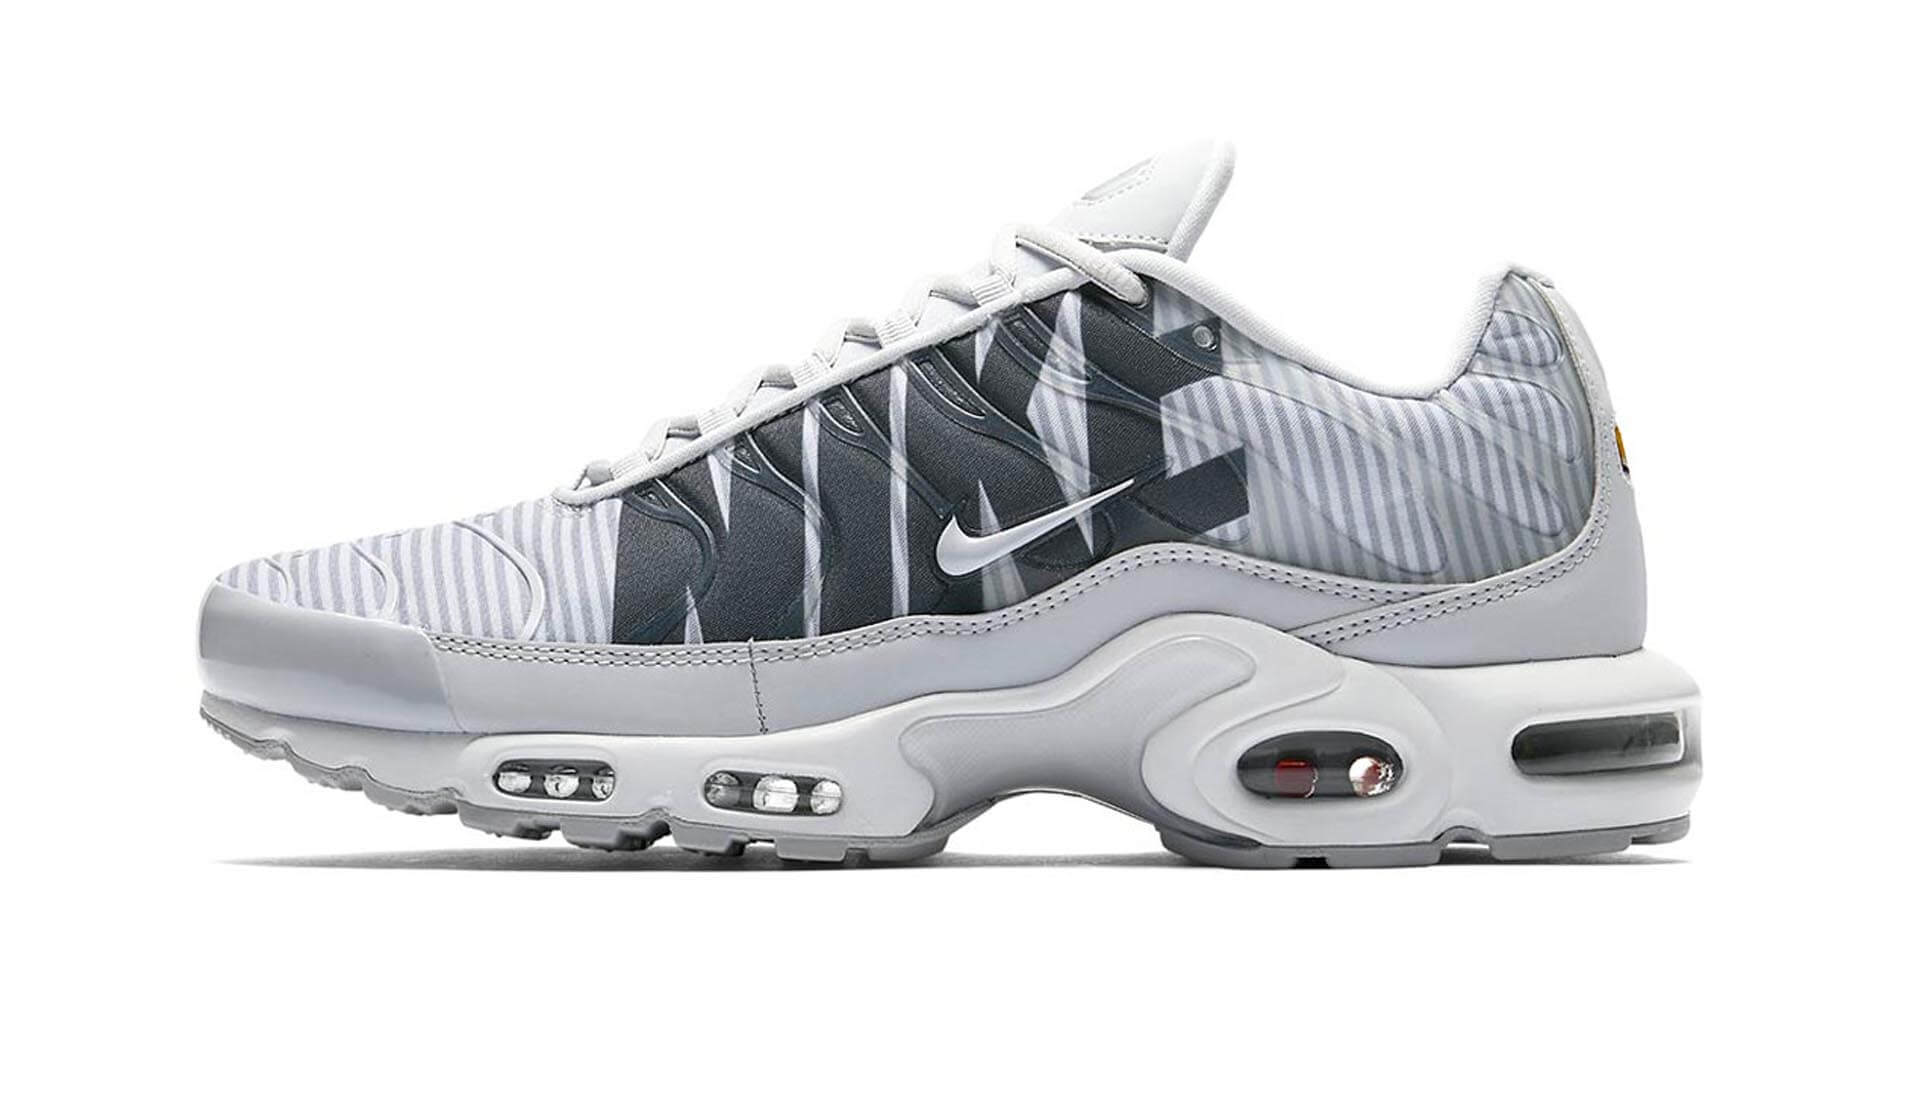 f6213382bc1c Nike Launch Air Max With Mercurial Facelift - SoccerBible